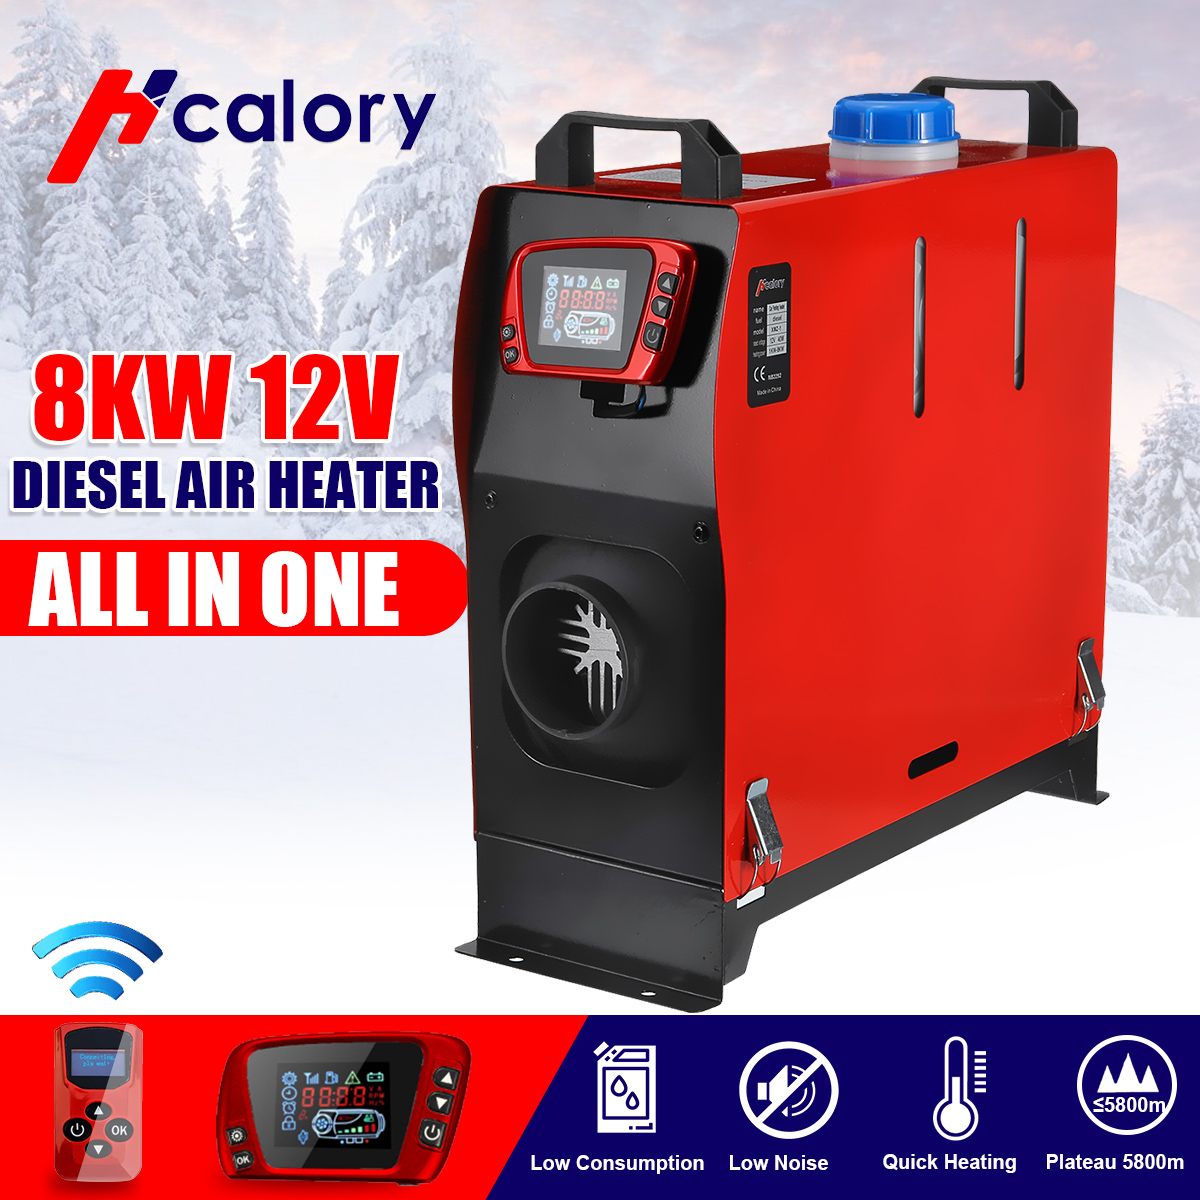 All in One Unit 8KW 12V Car Heating Tool Diesel Air Heater Single Hole LCD Monitor Parking Warmer For Car Truck Bus Boat RV(China)